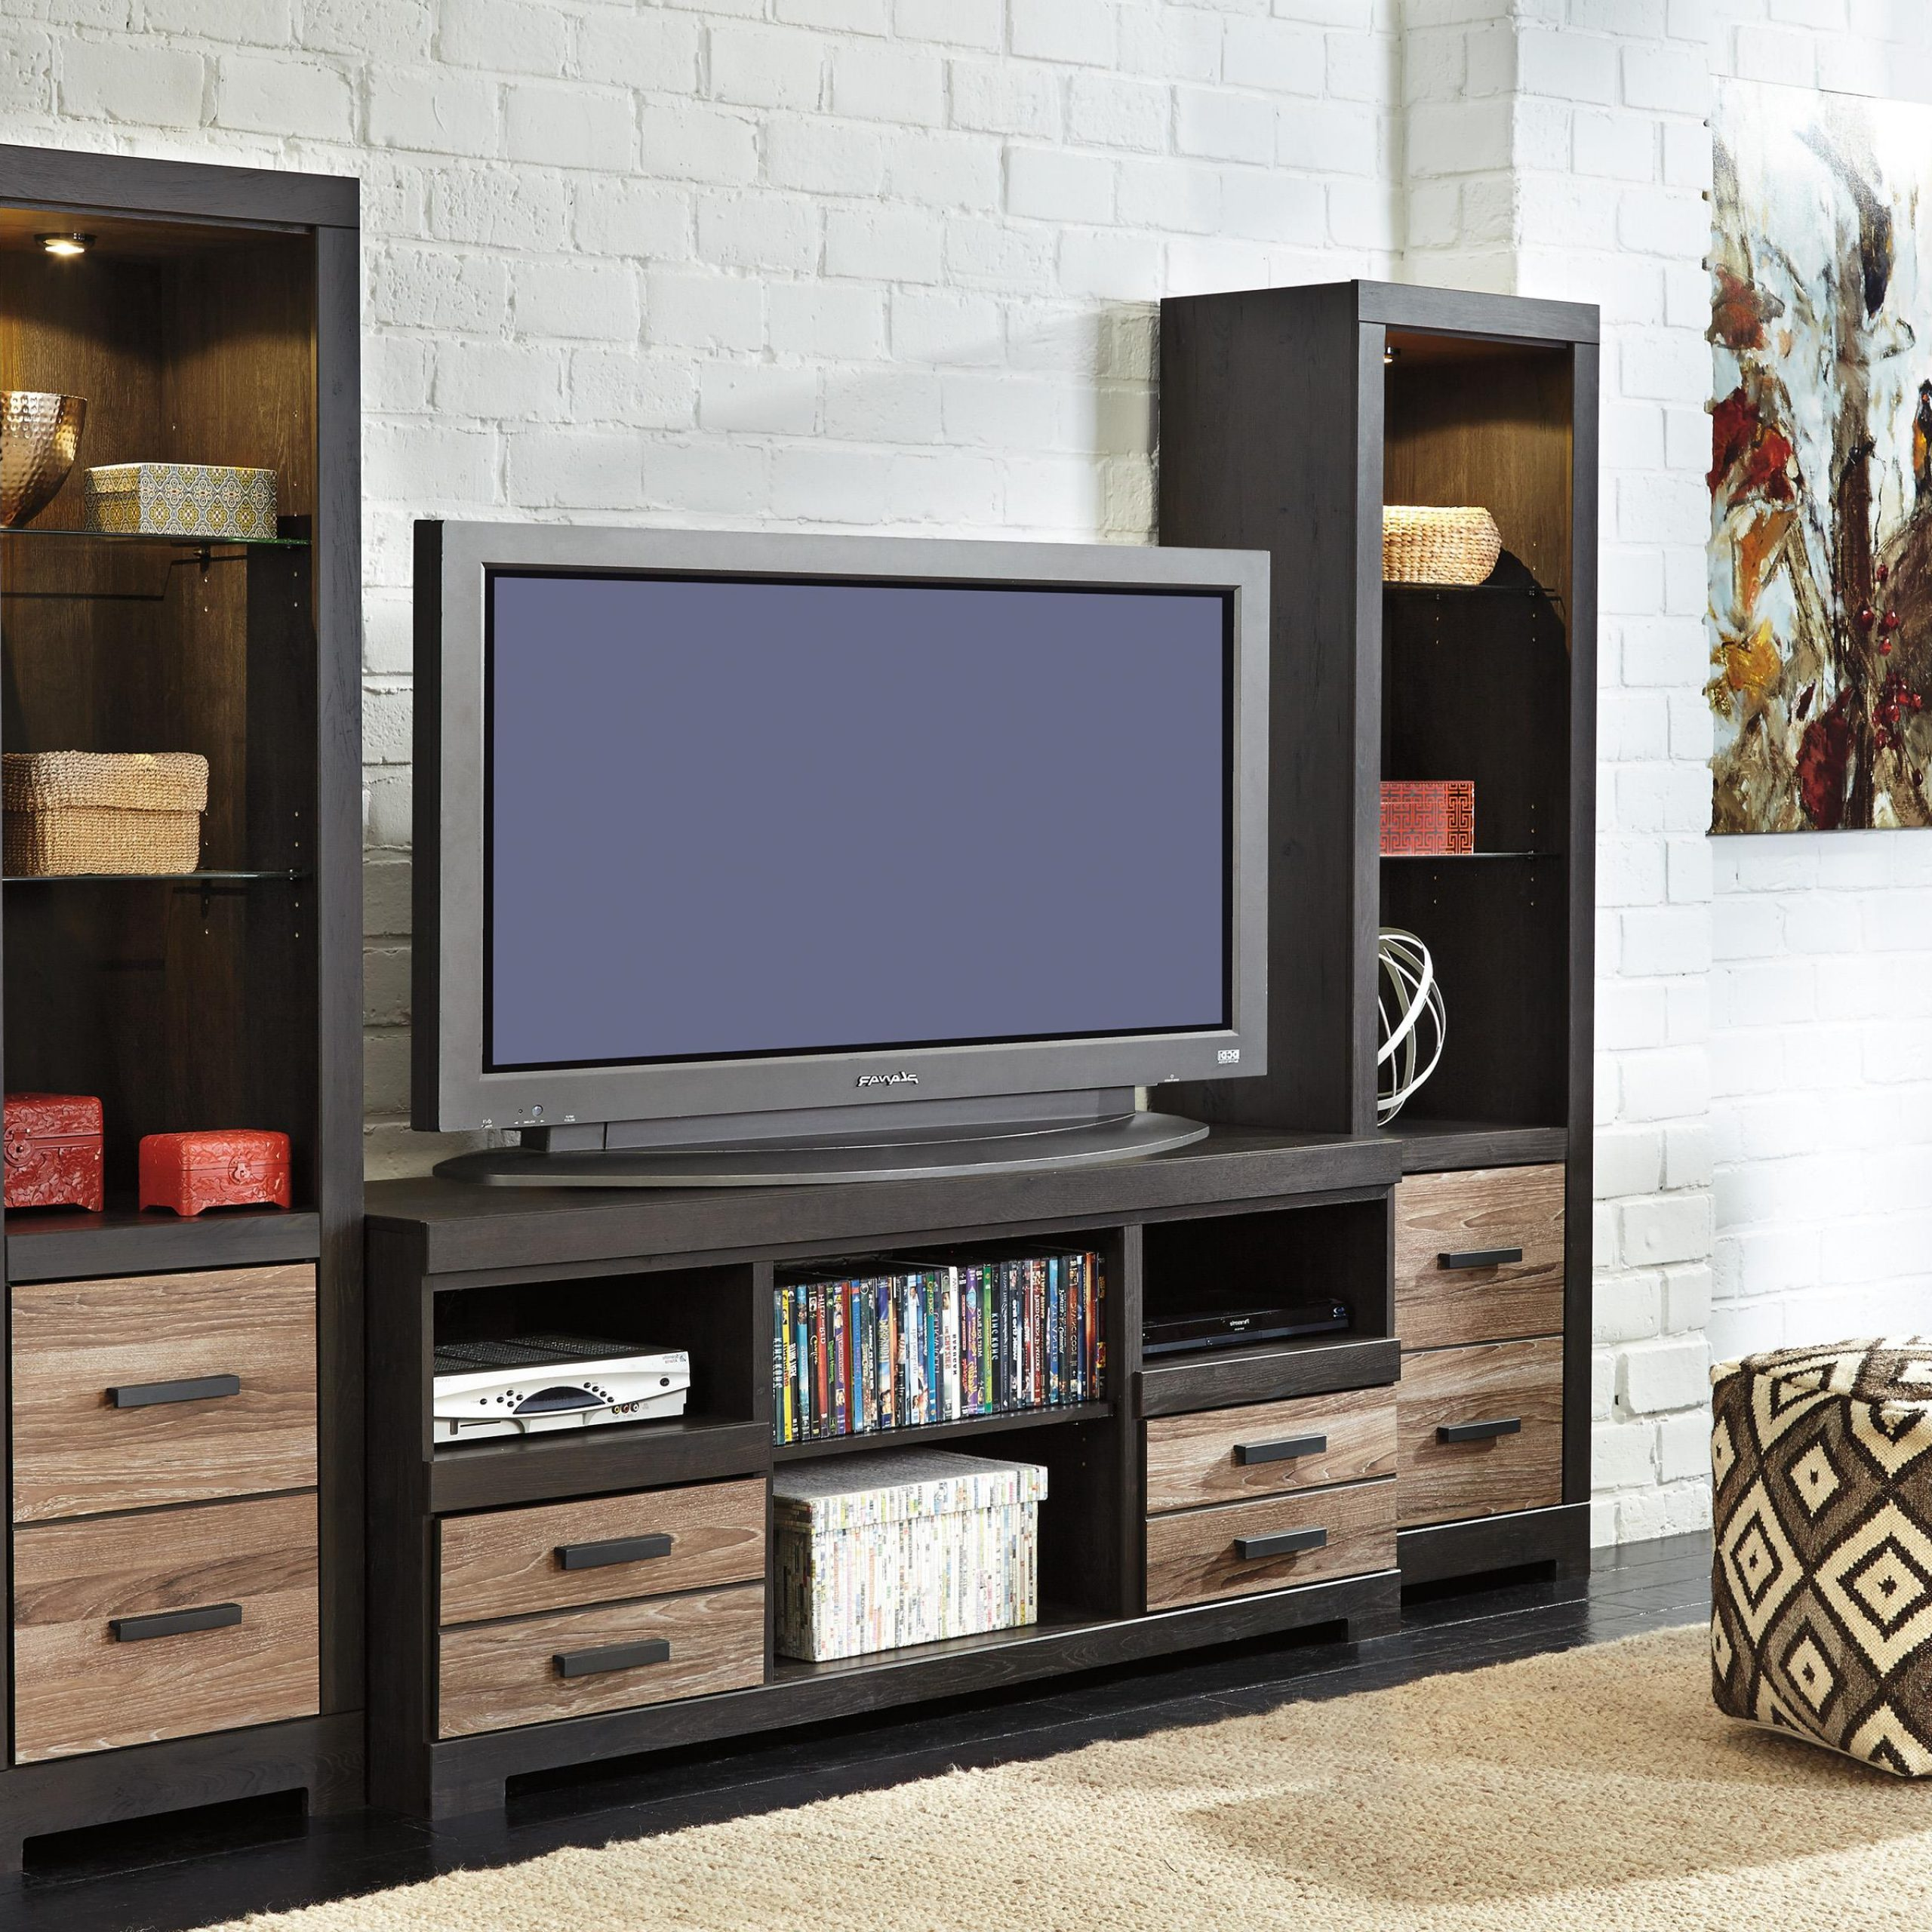 Large Tv Stand & 2 Tall Pierssignature Design Intended For Lancaster Large Tv Stands (View 18 of 20)